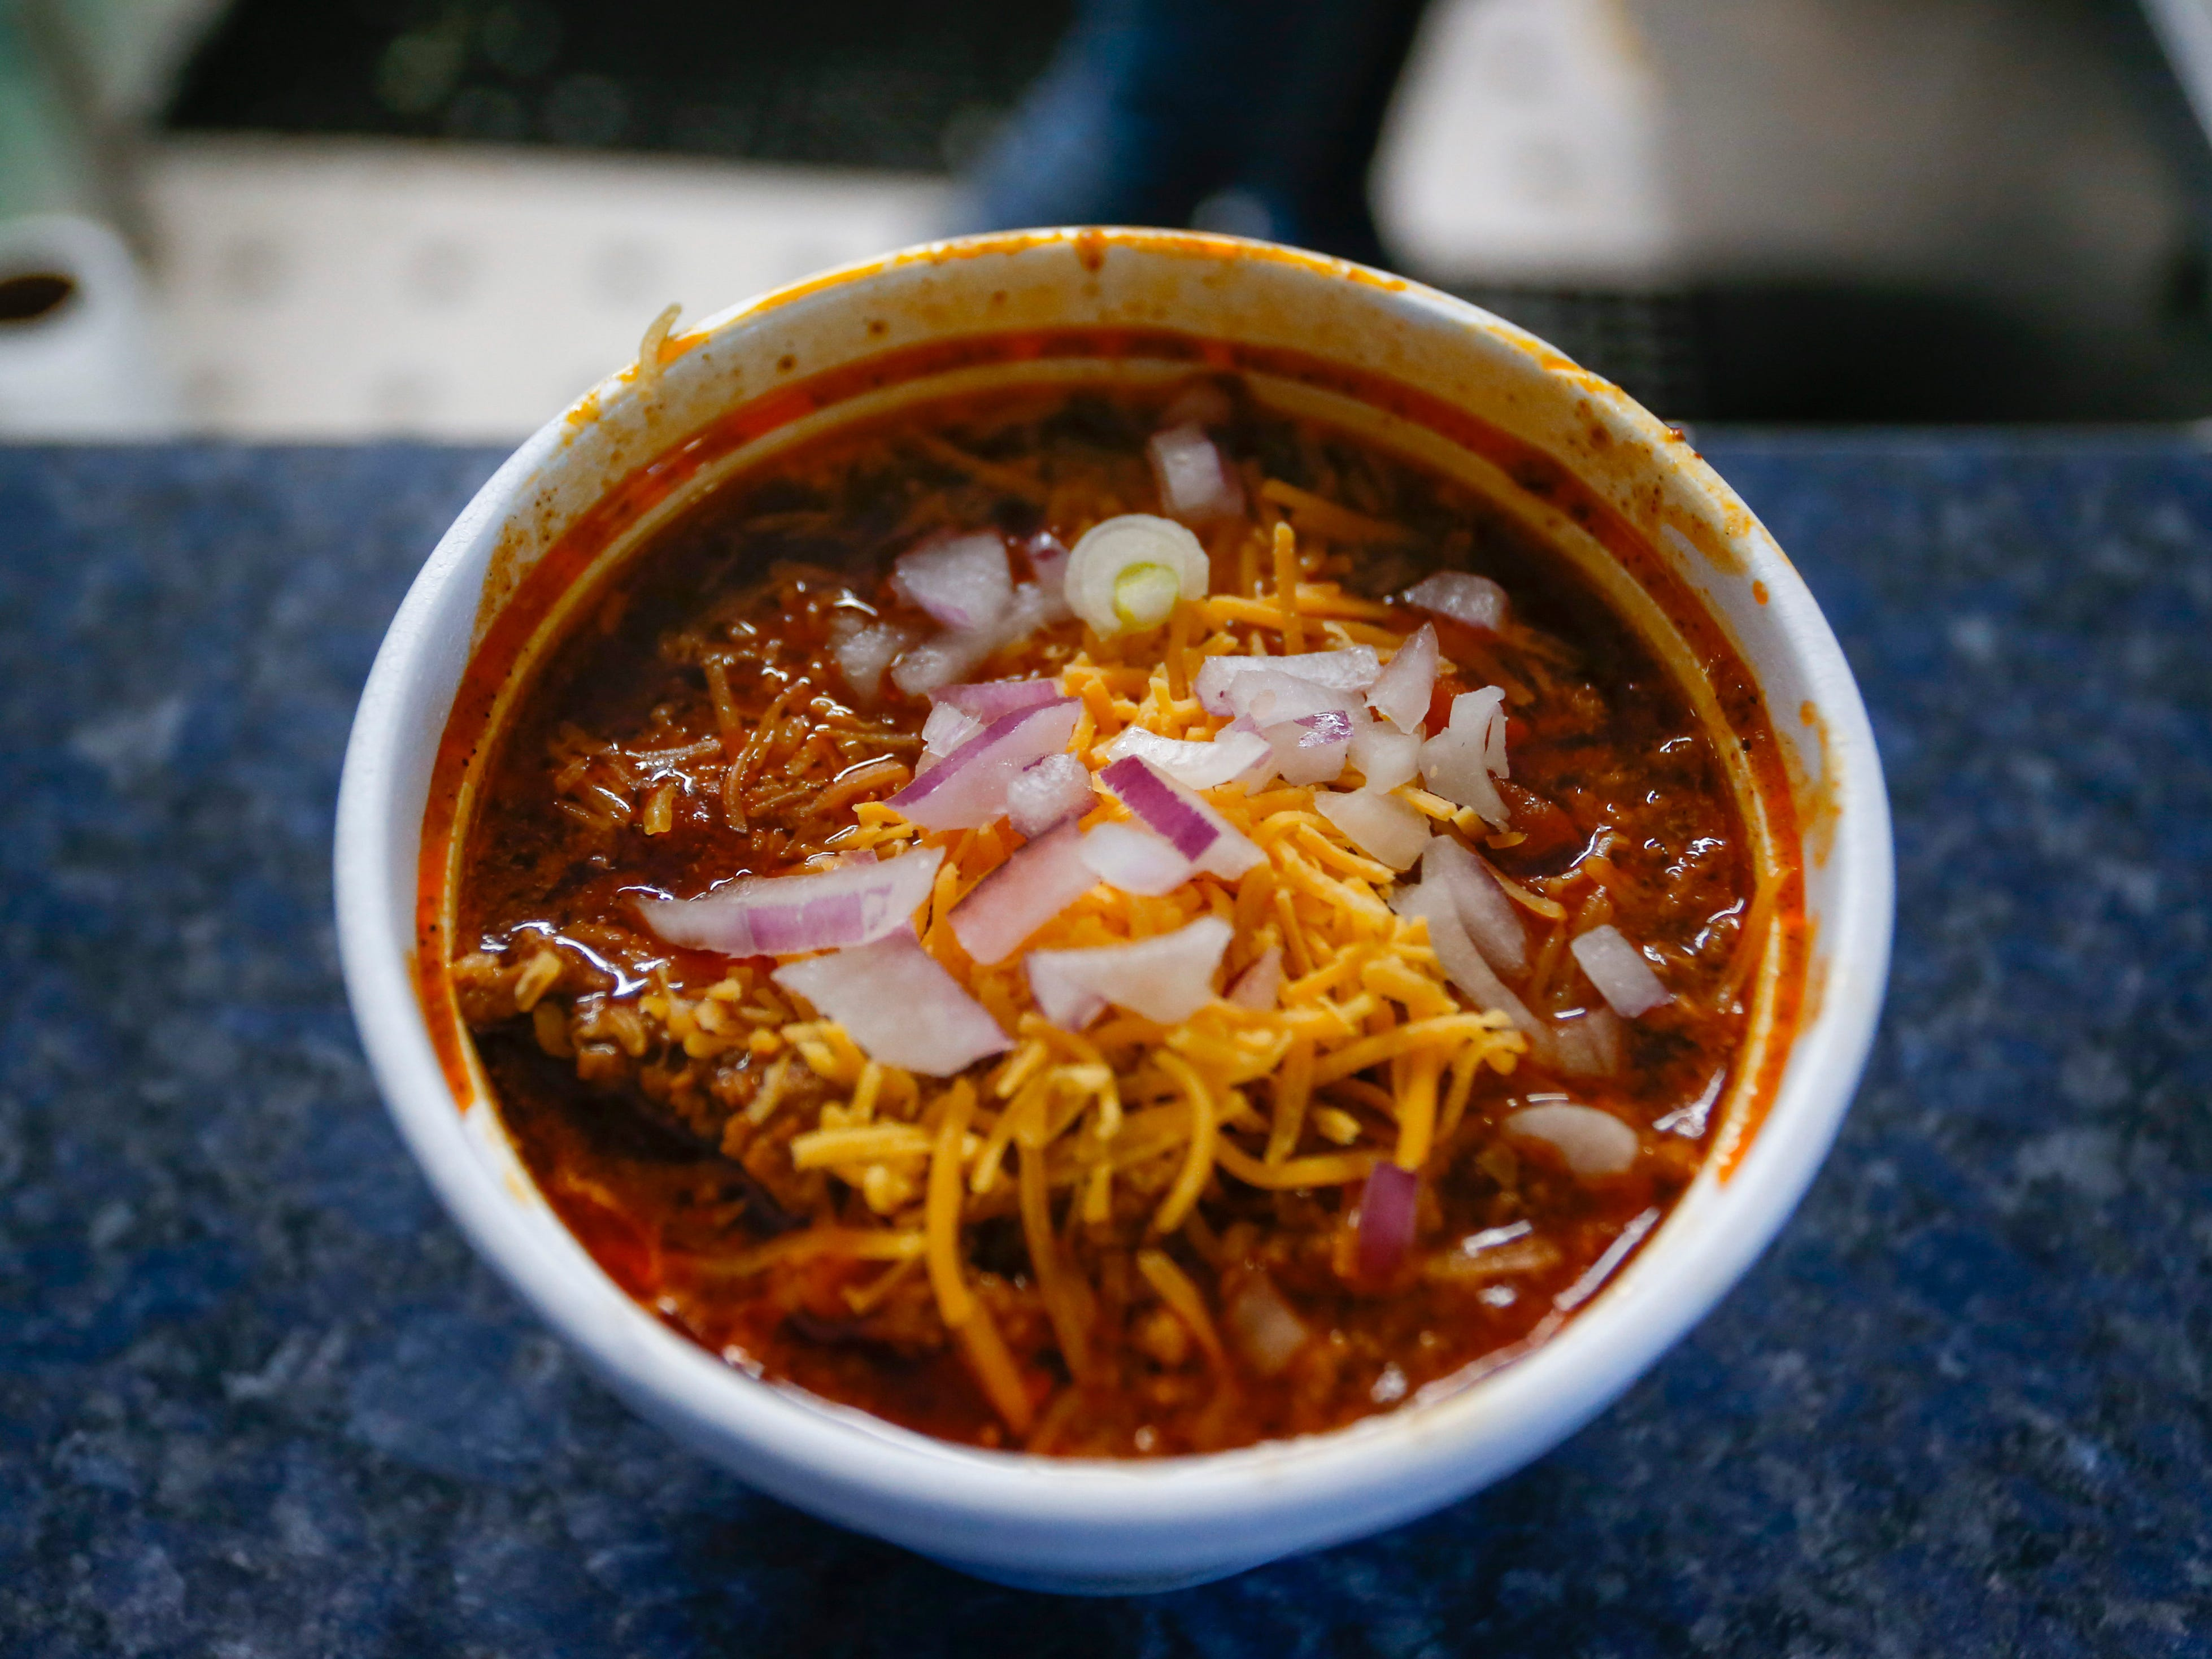 A cup of chili at Bigfoot Subs at 2204 W. College St.